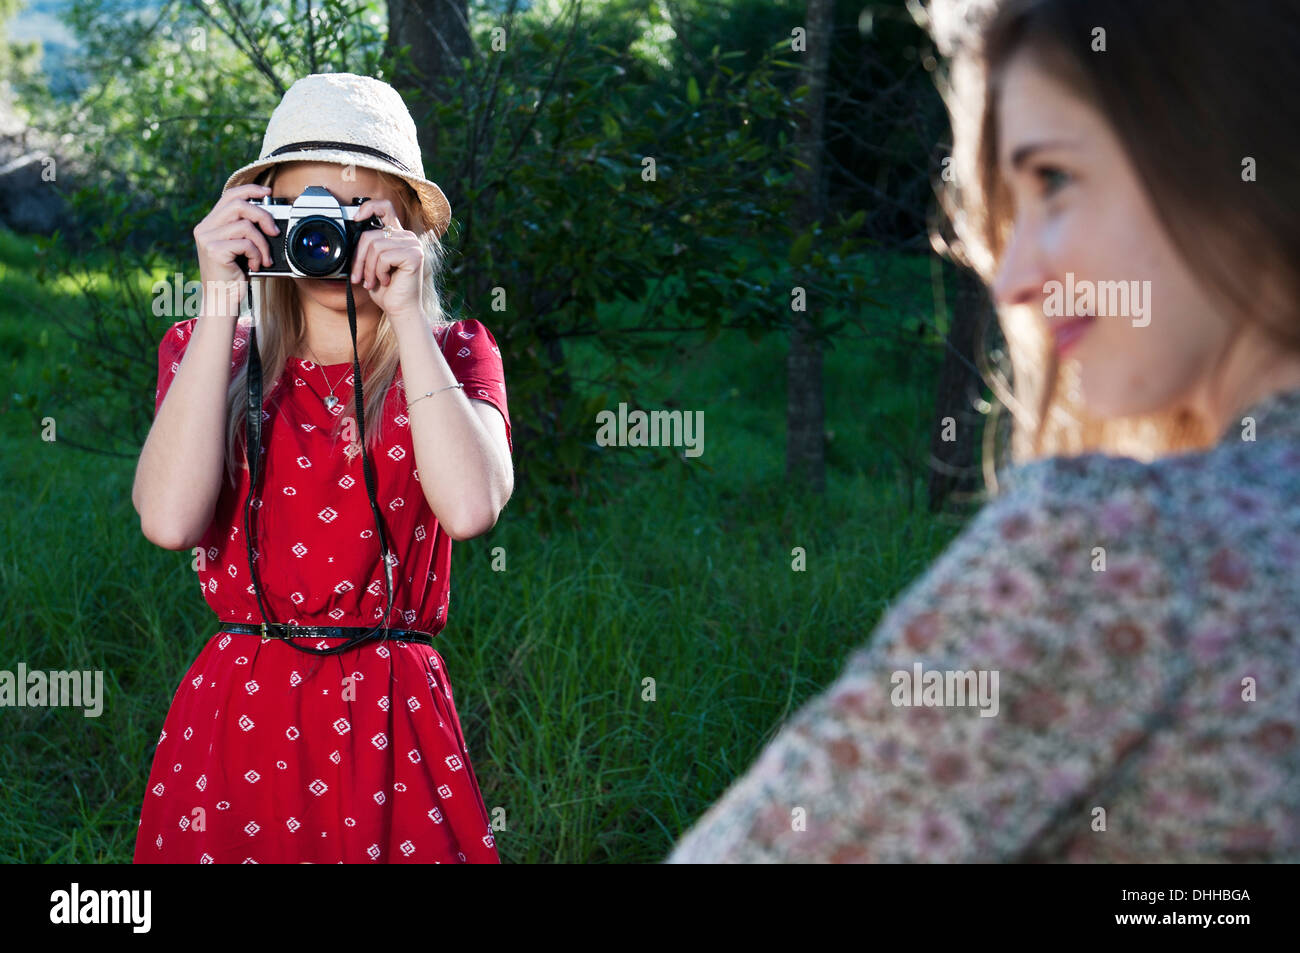 Young woman taking photograph of friend - Stock Image